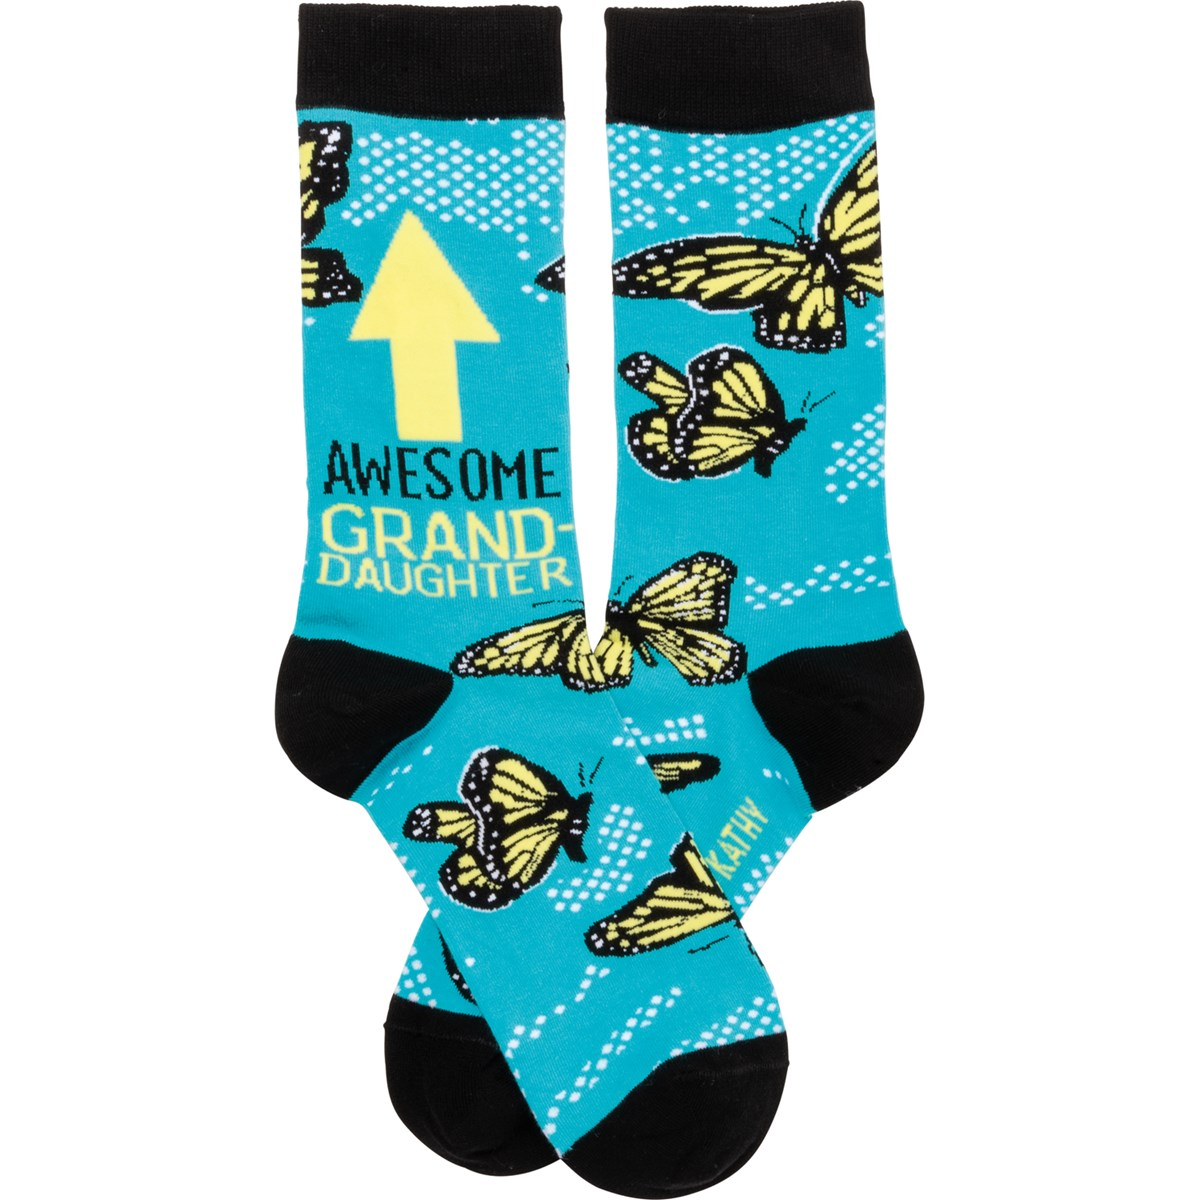 Socks - Awesome Granddaughter - One Size Fits Most - Cotton, Nylon, Spandex